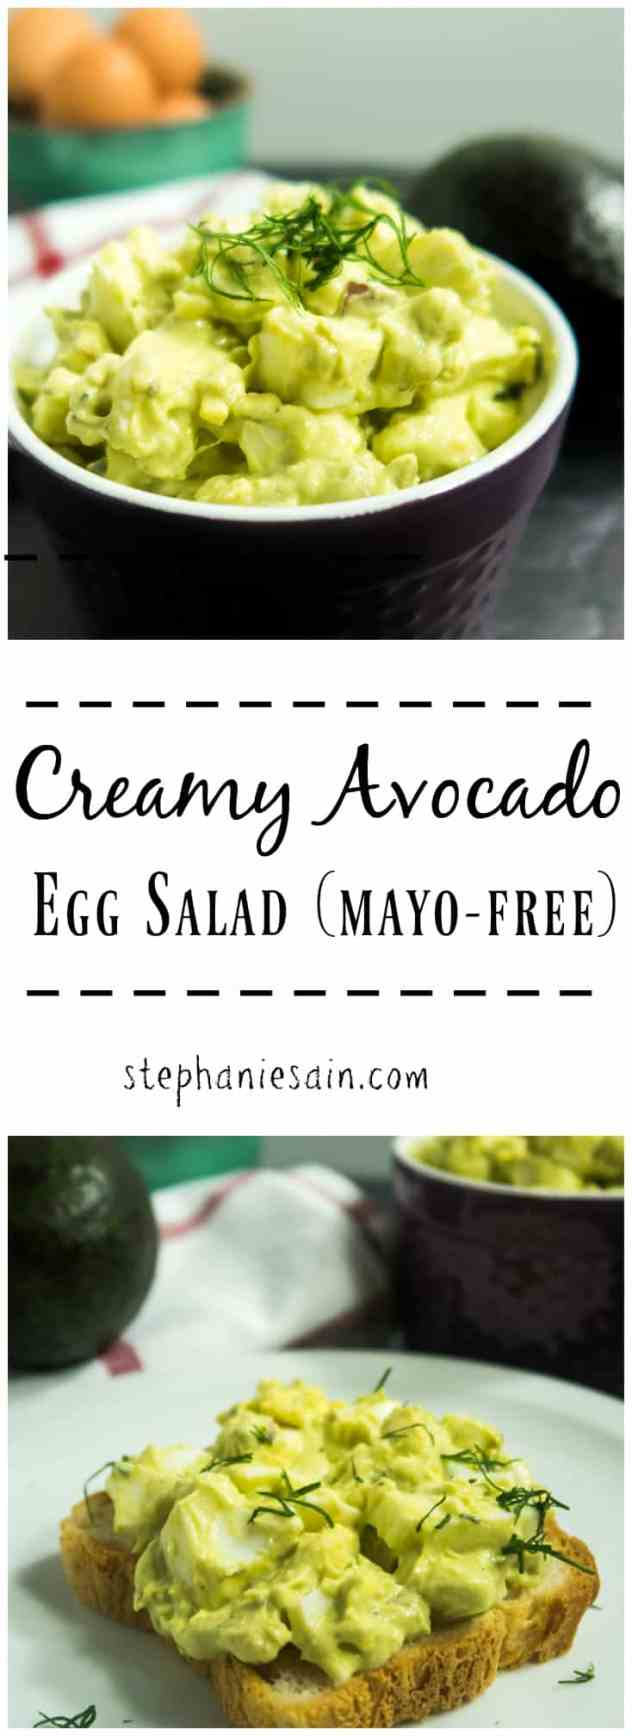 This Creamy Avocado Egg Salad is mayo free and the perfect accompaniment on sandwiches, chips, or veggies. Gluten Free & Vegetarian.